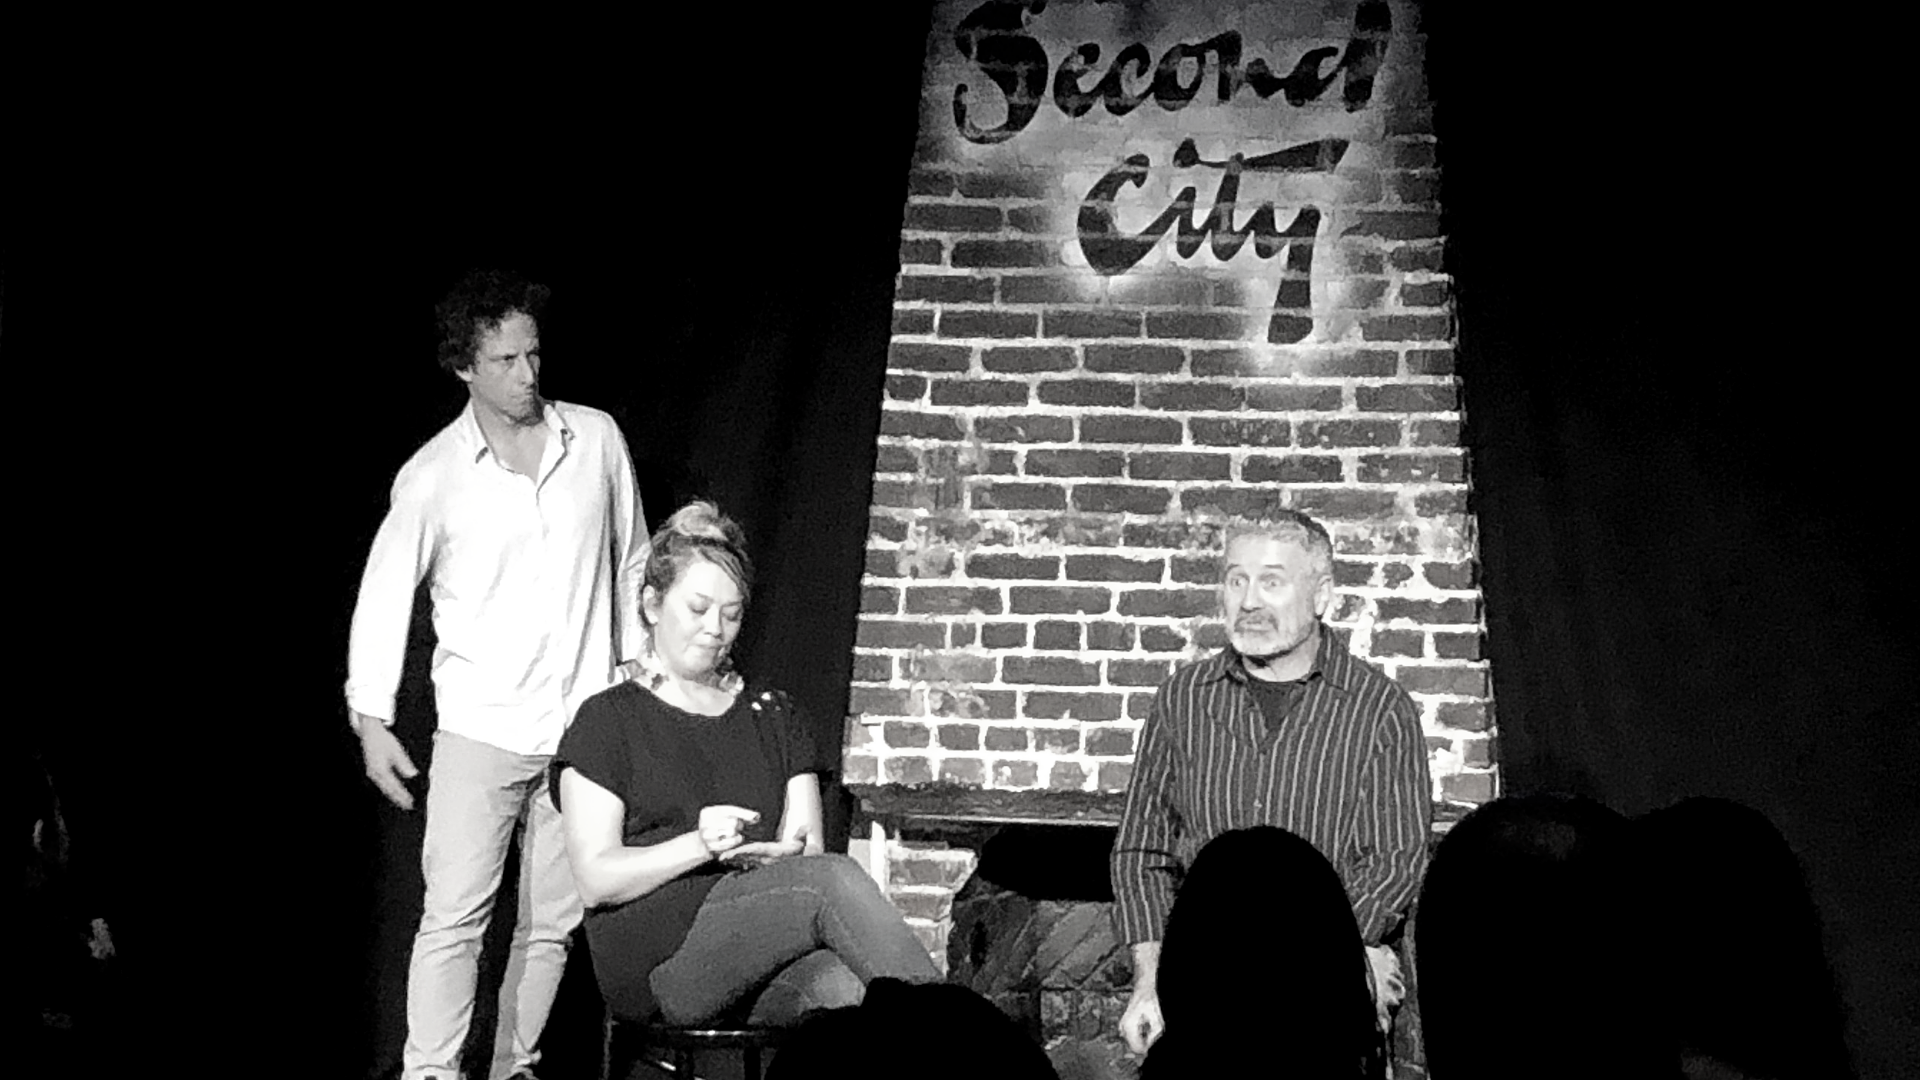 people doing things  (Feb 23) Second City Hollywood